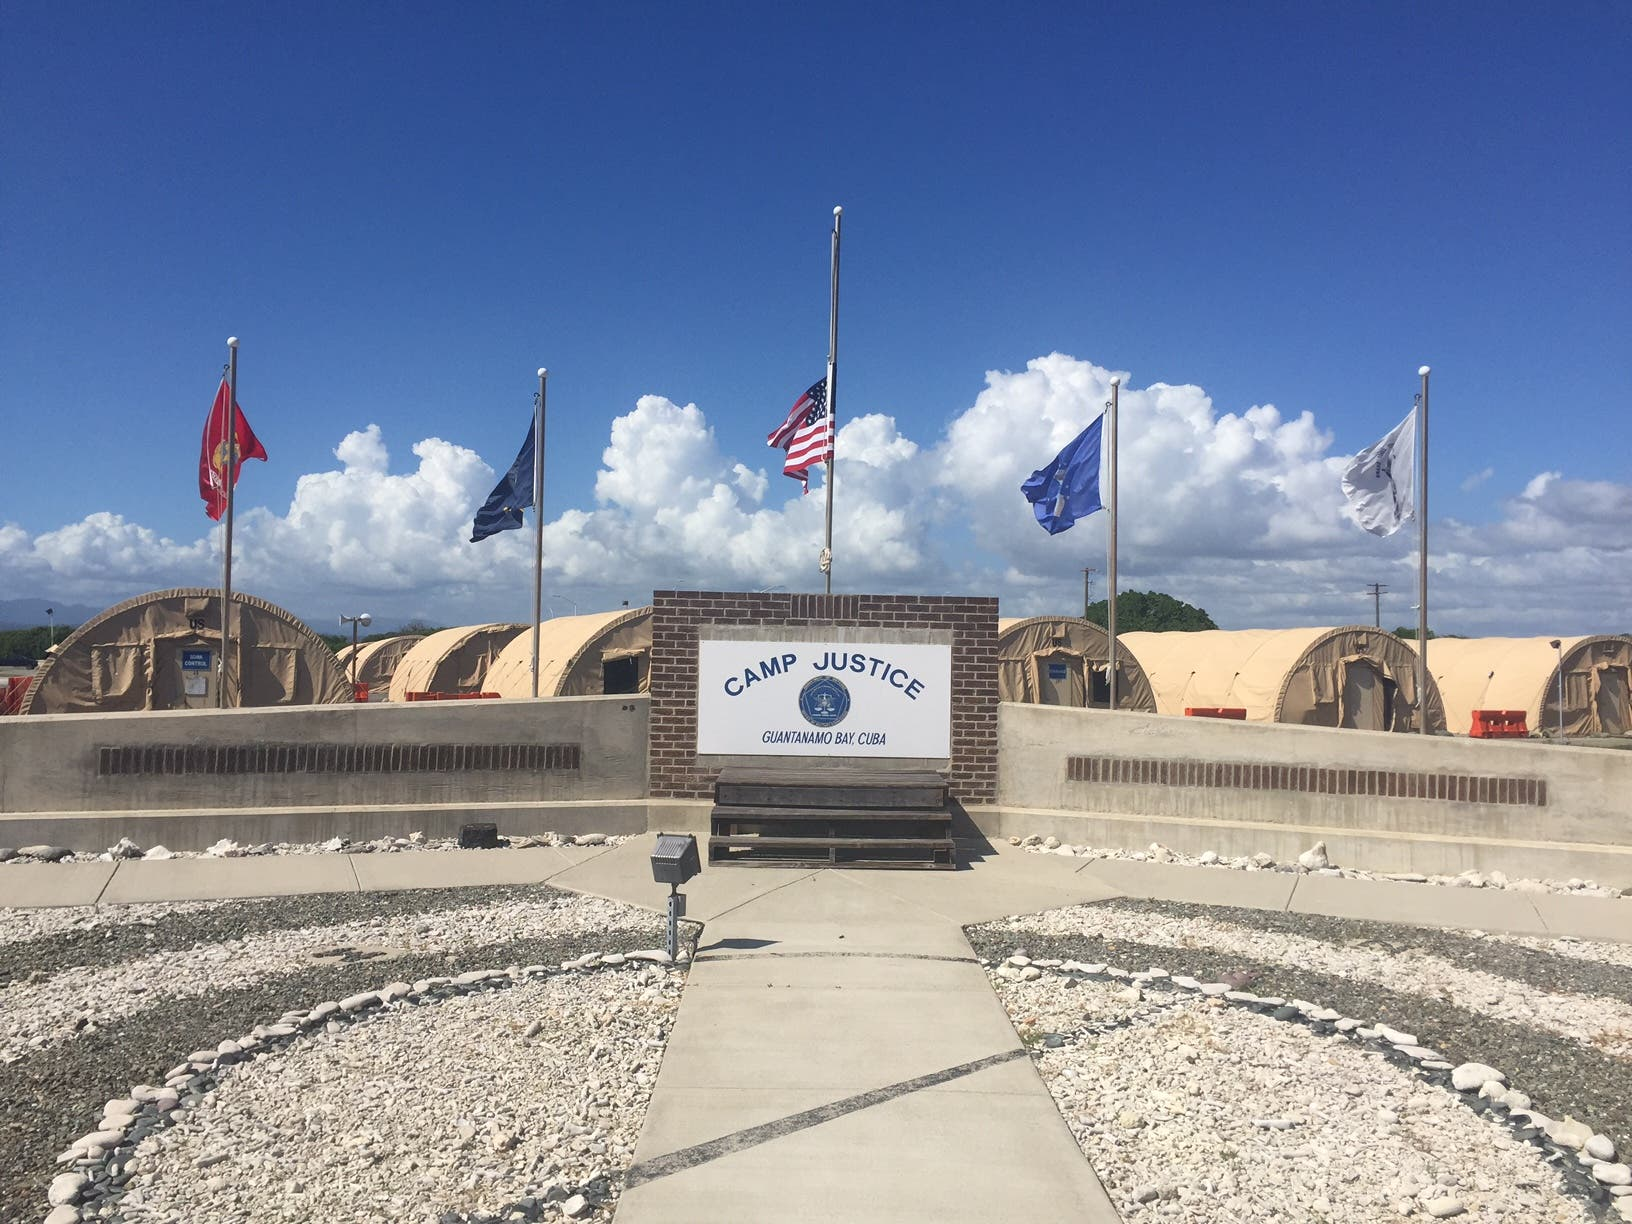 The US flag is seen at half-staff on December 6, 2015 near the military courtroom in Guantanamo Bay, Cuba. (AFP)